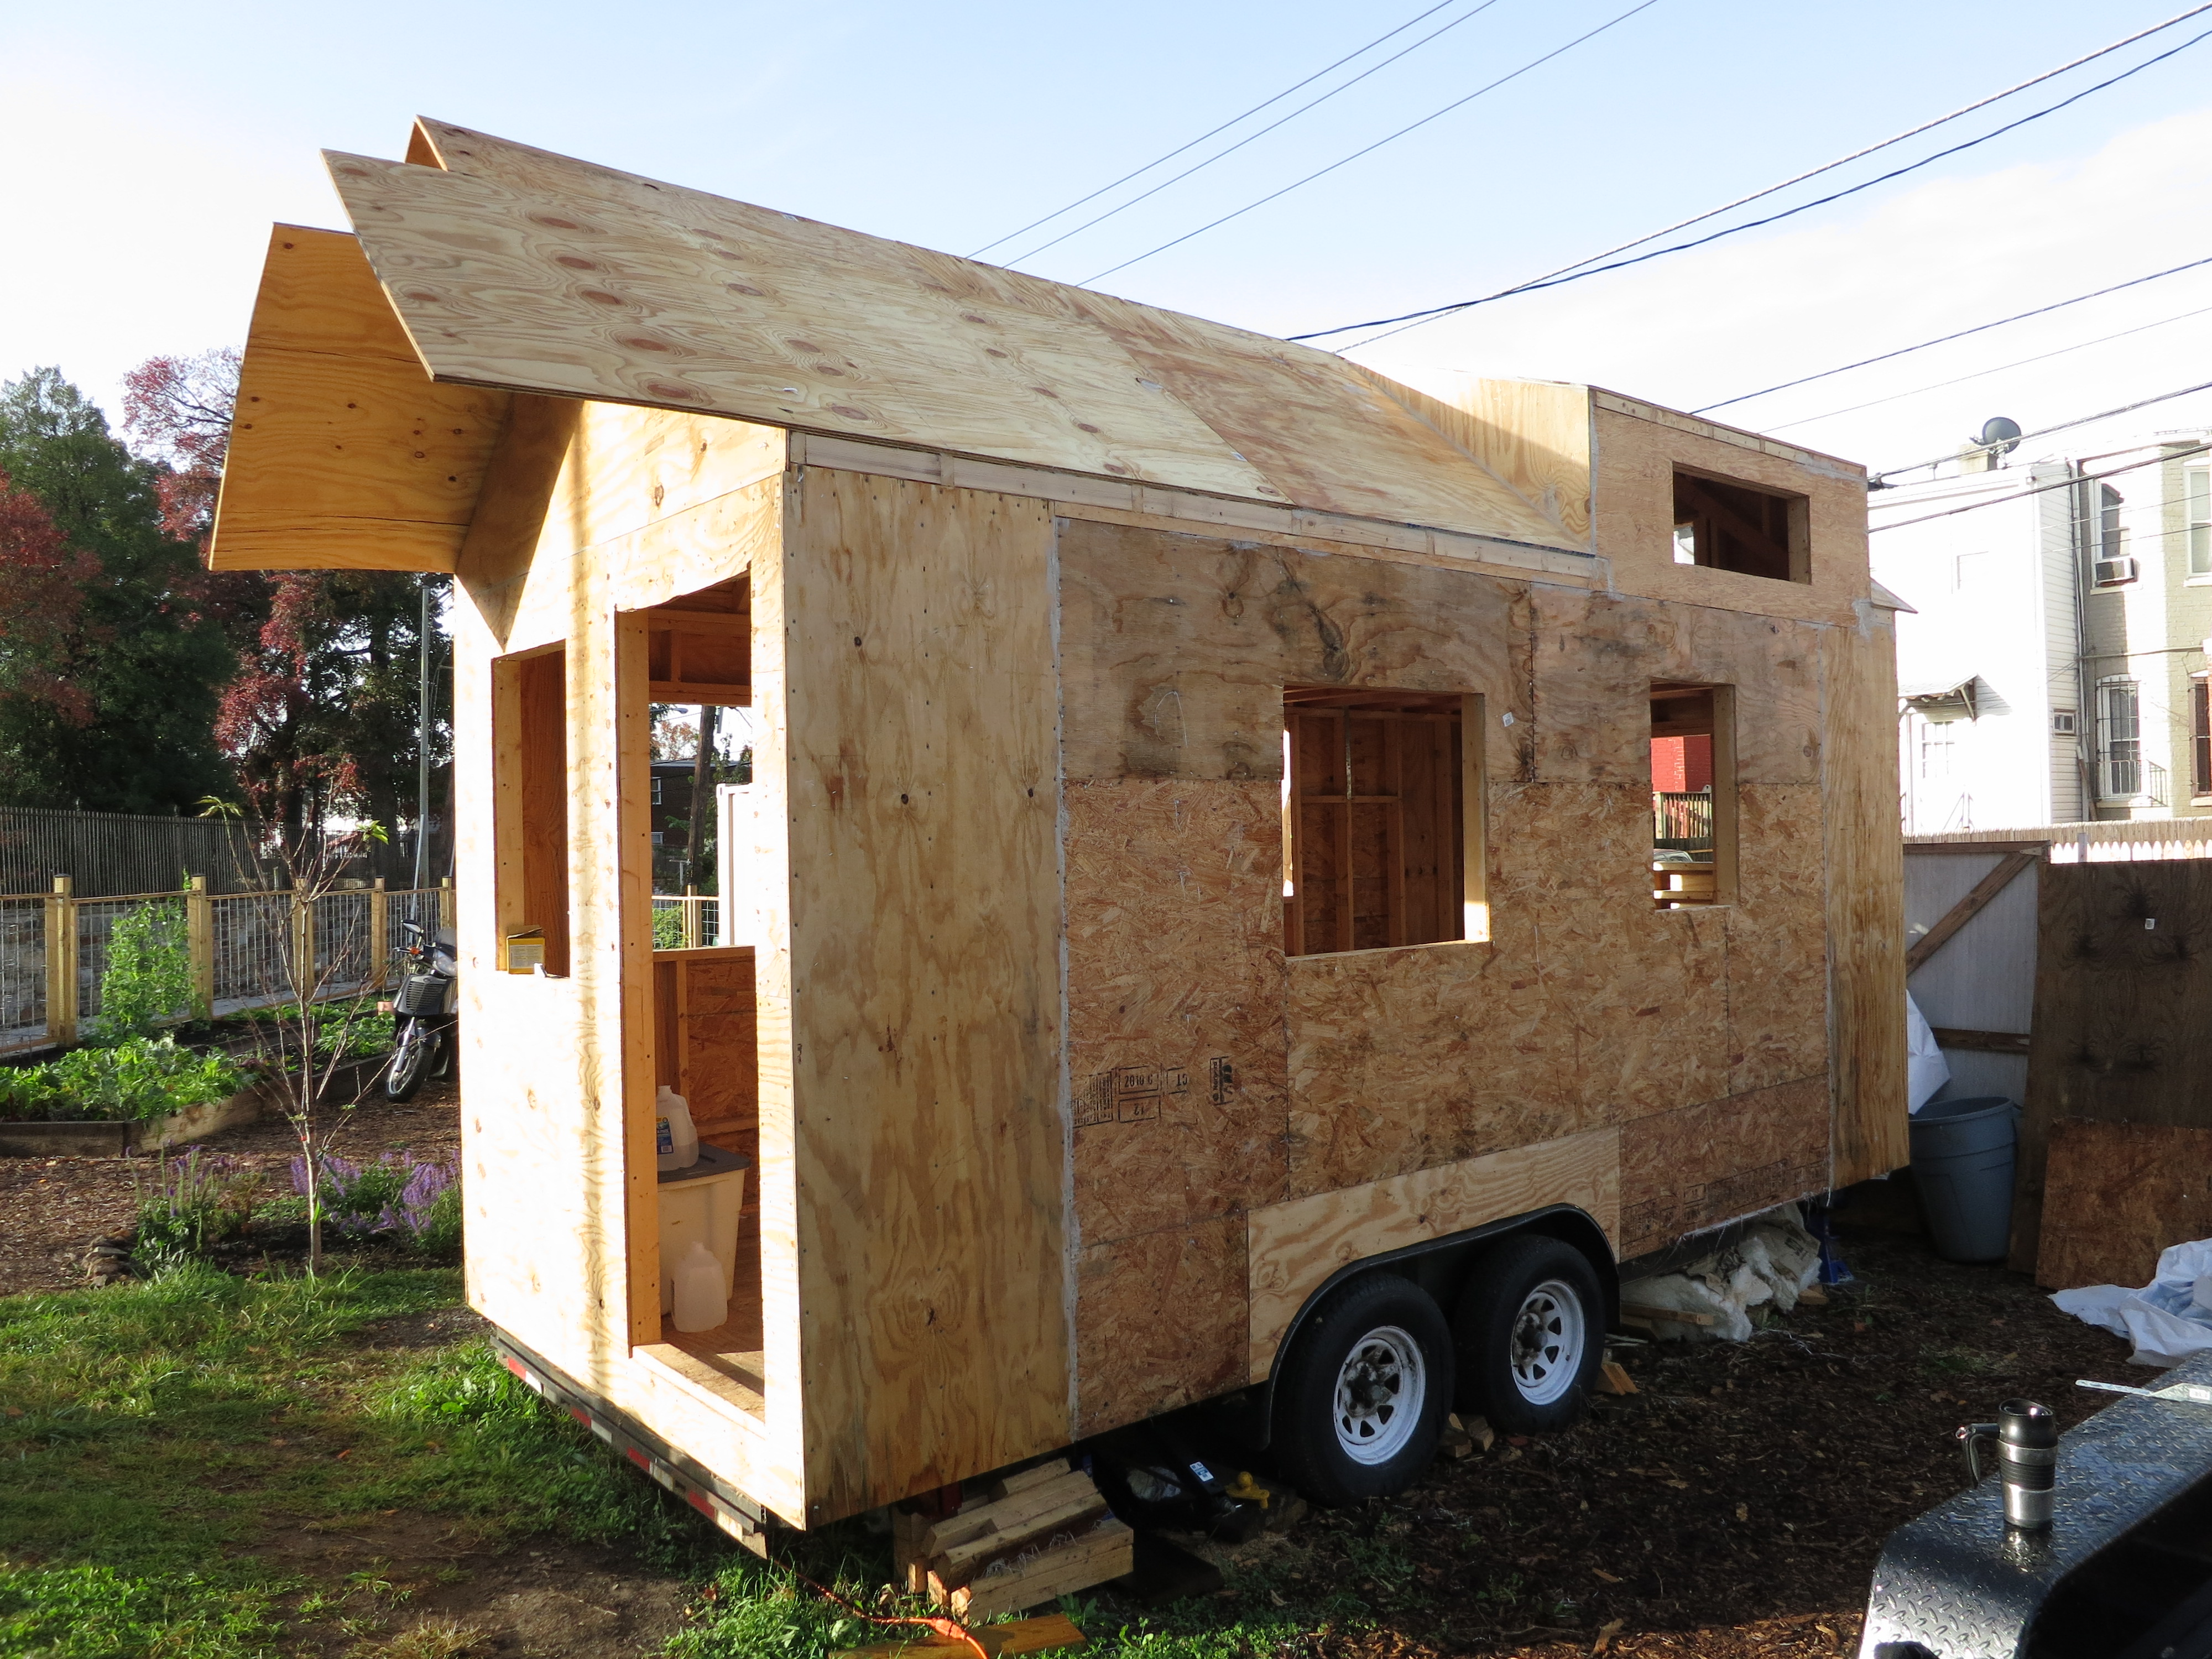 House with new, extended end walls and new roof